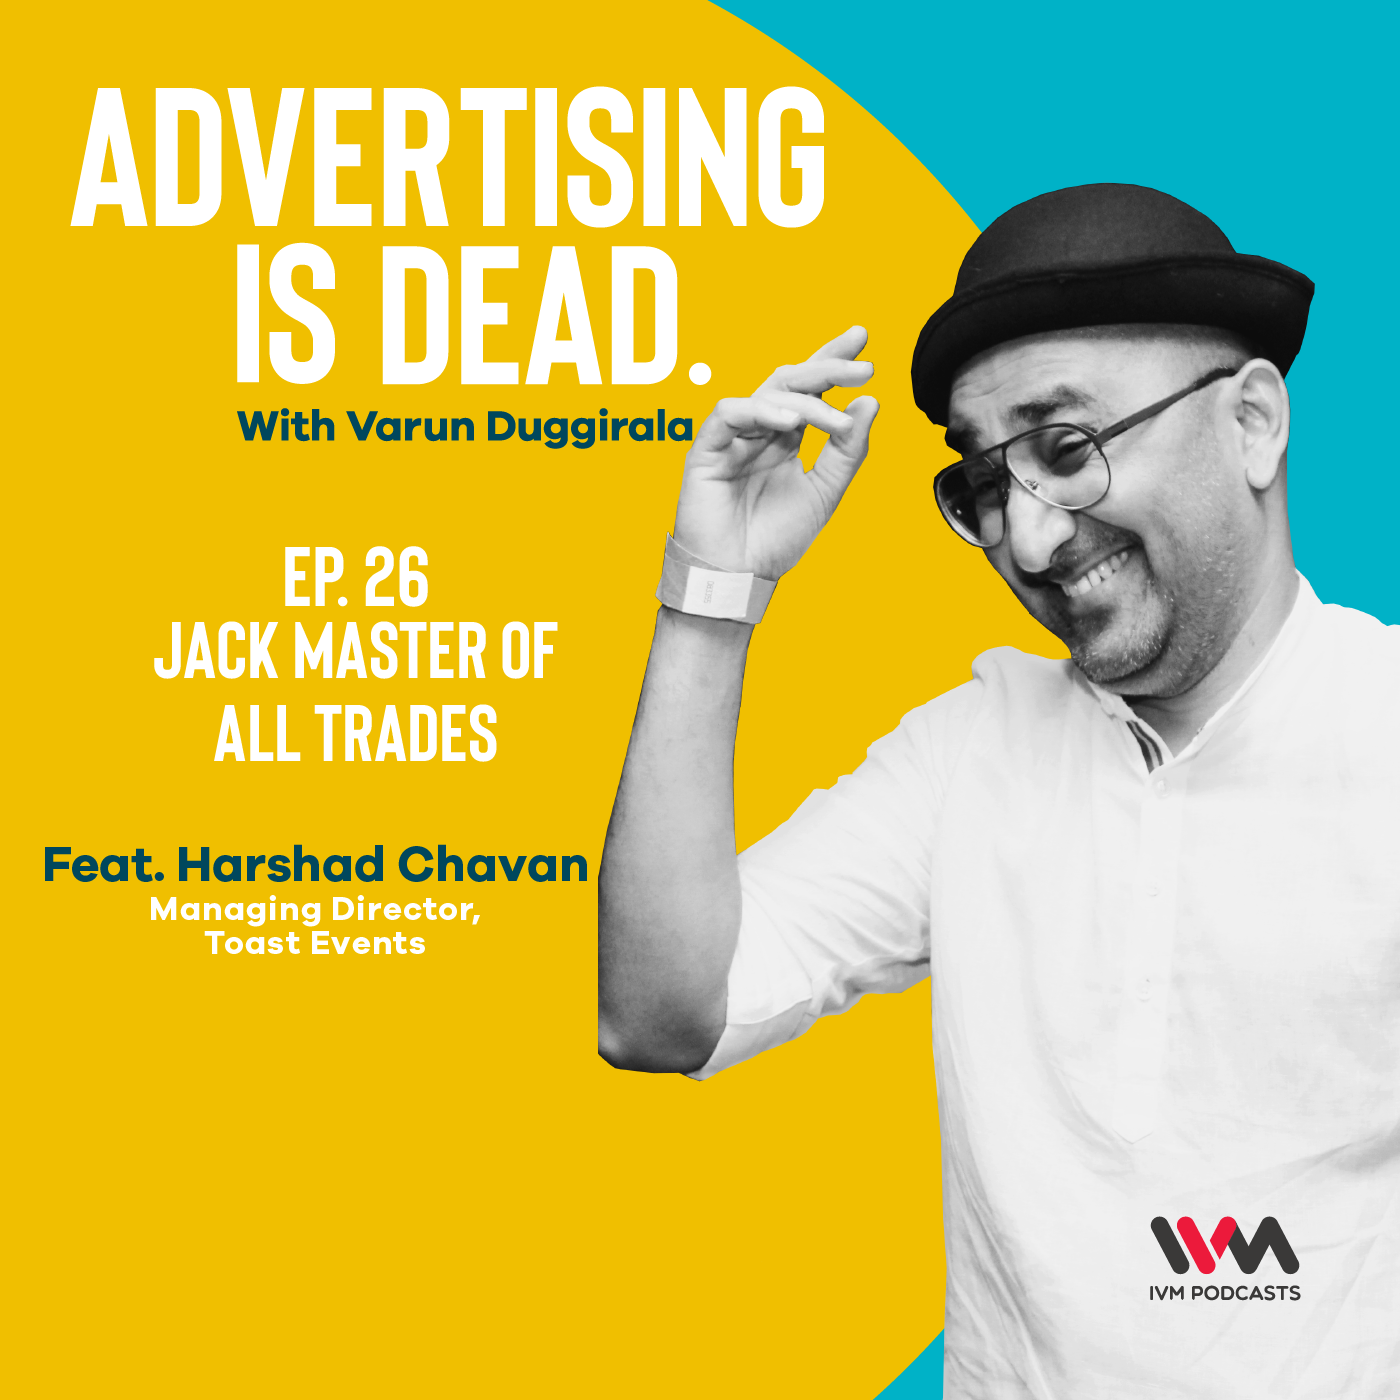 Ep. 26: Jack Master of all Trades